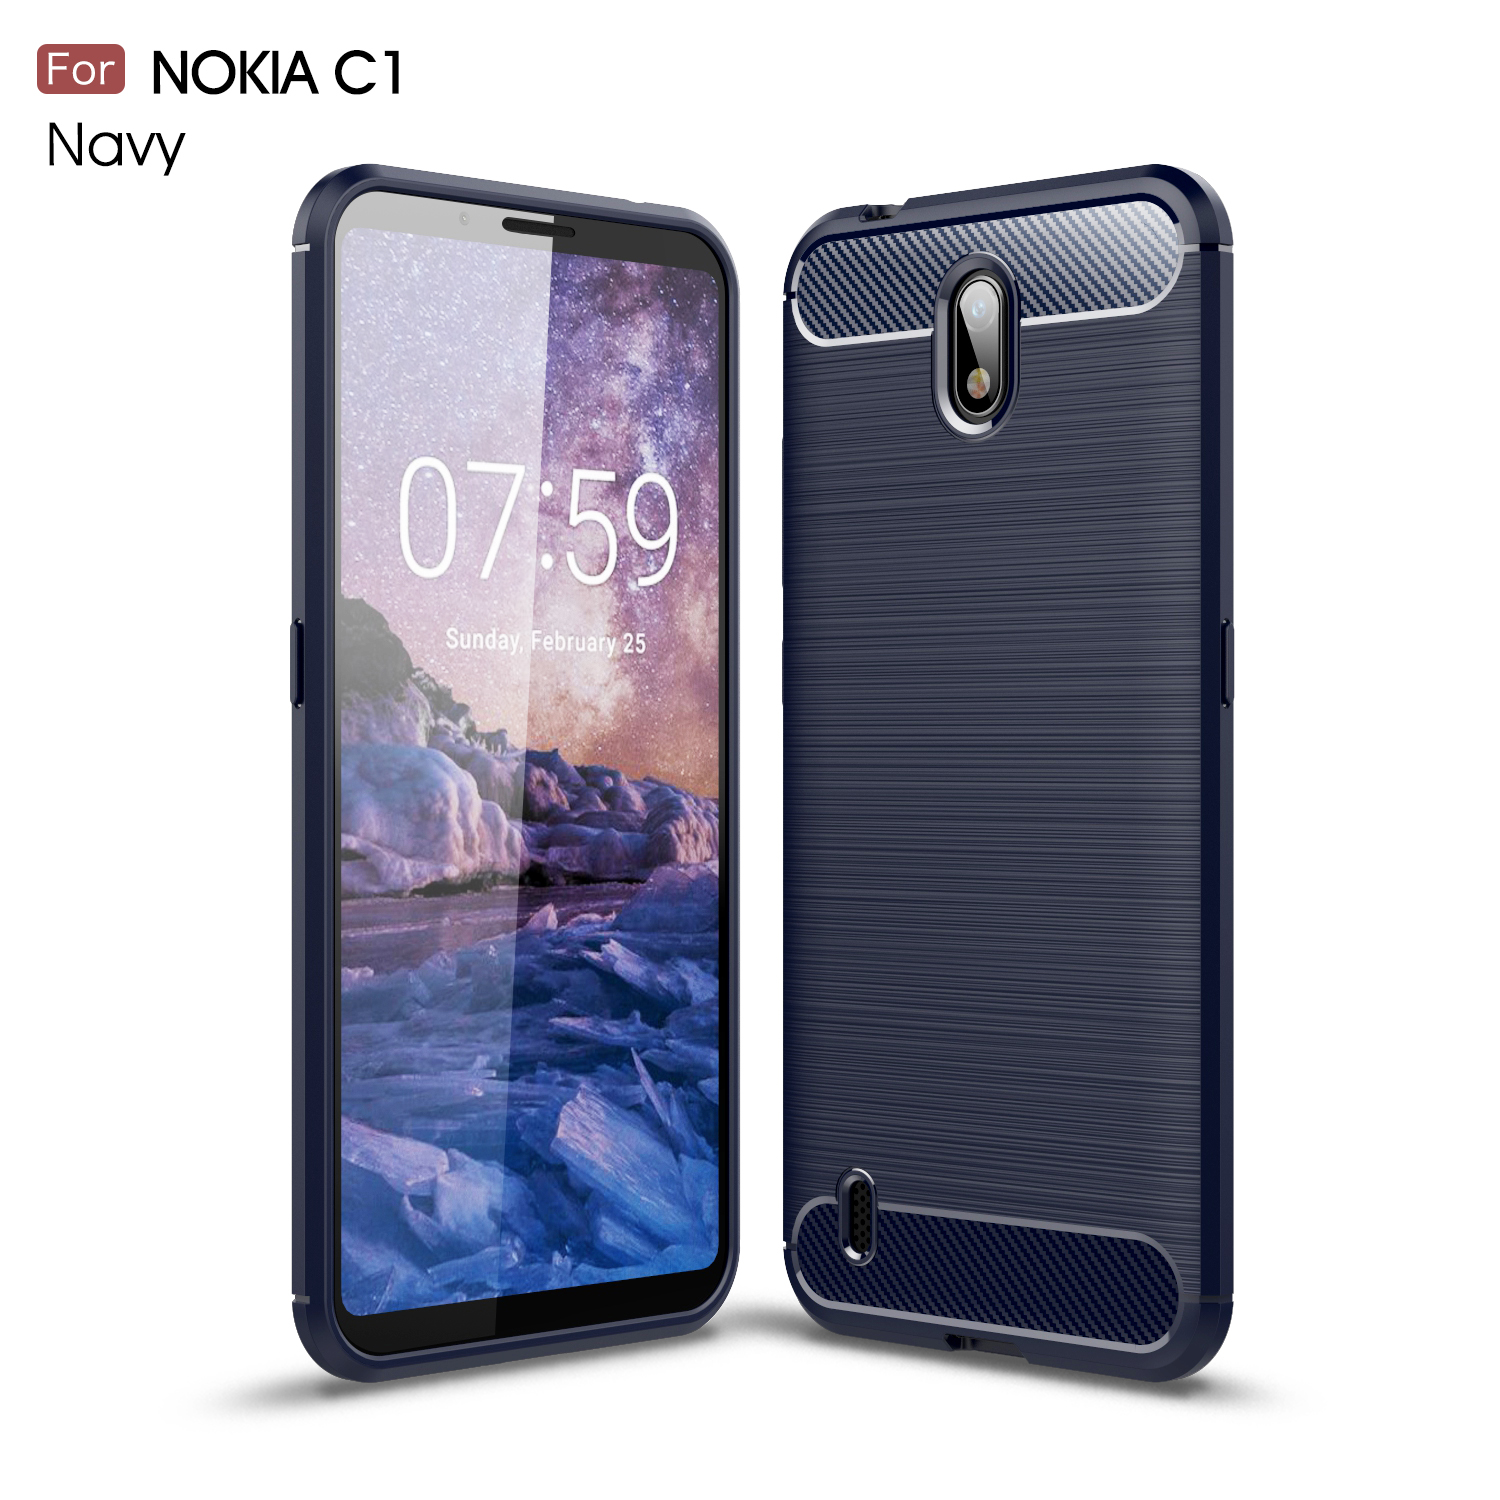 For Capas Nokia C1 Case For Nokia C1 Anti-Knock Soft TPU Brushed Rugger Silicone Phone Case For Nokia C1 Cover Bumper